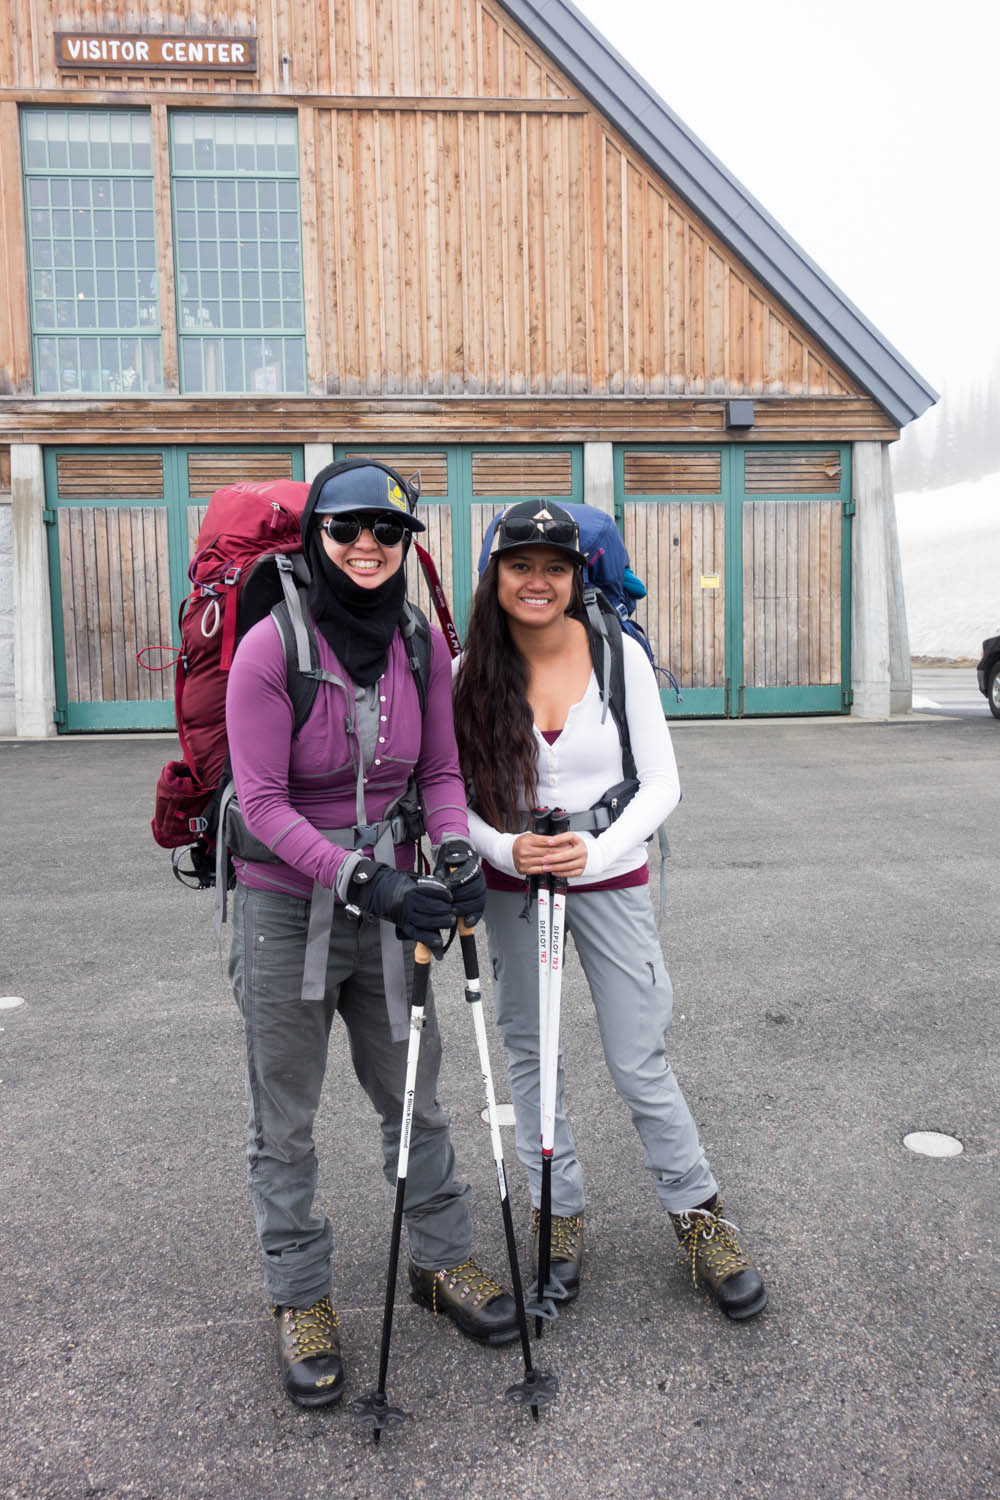 Before the first ascent to Camp Muir